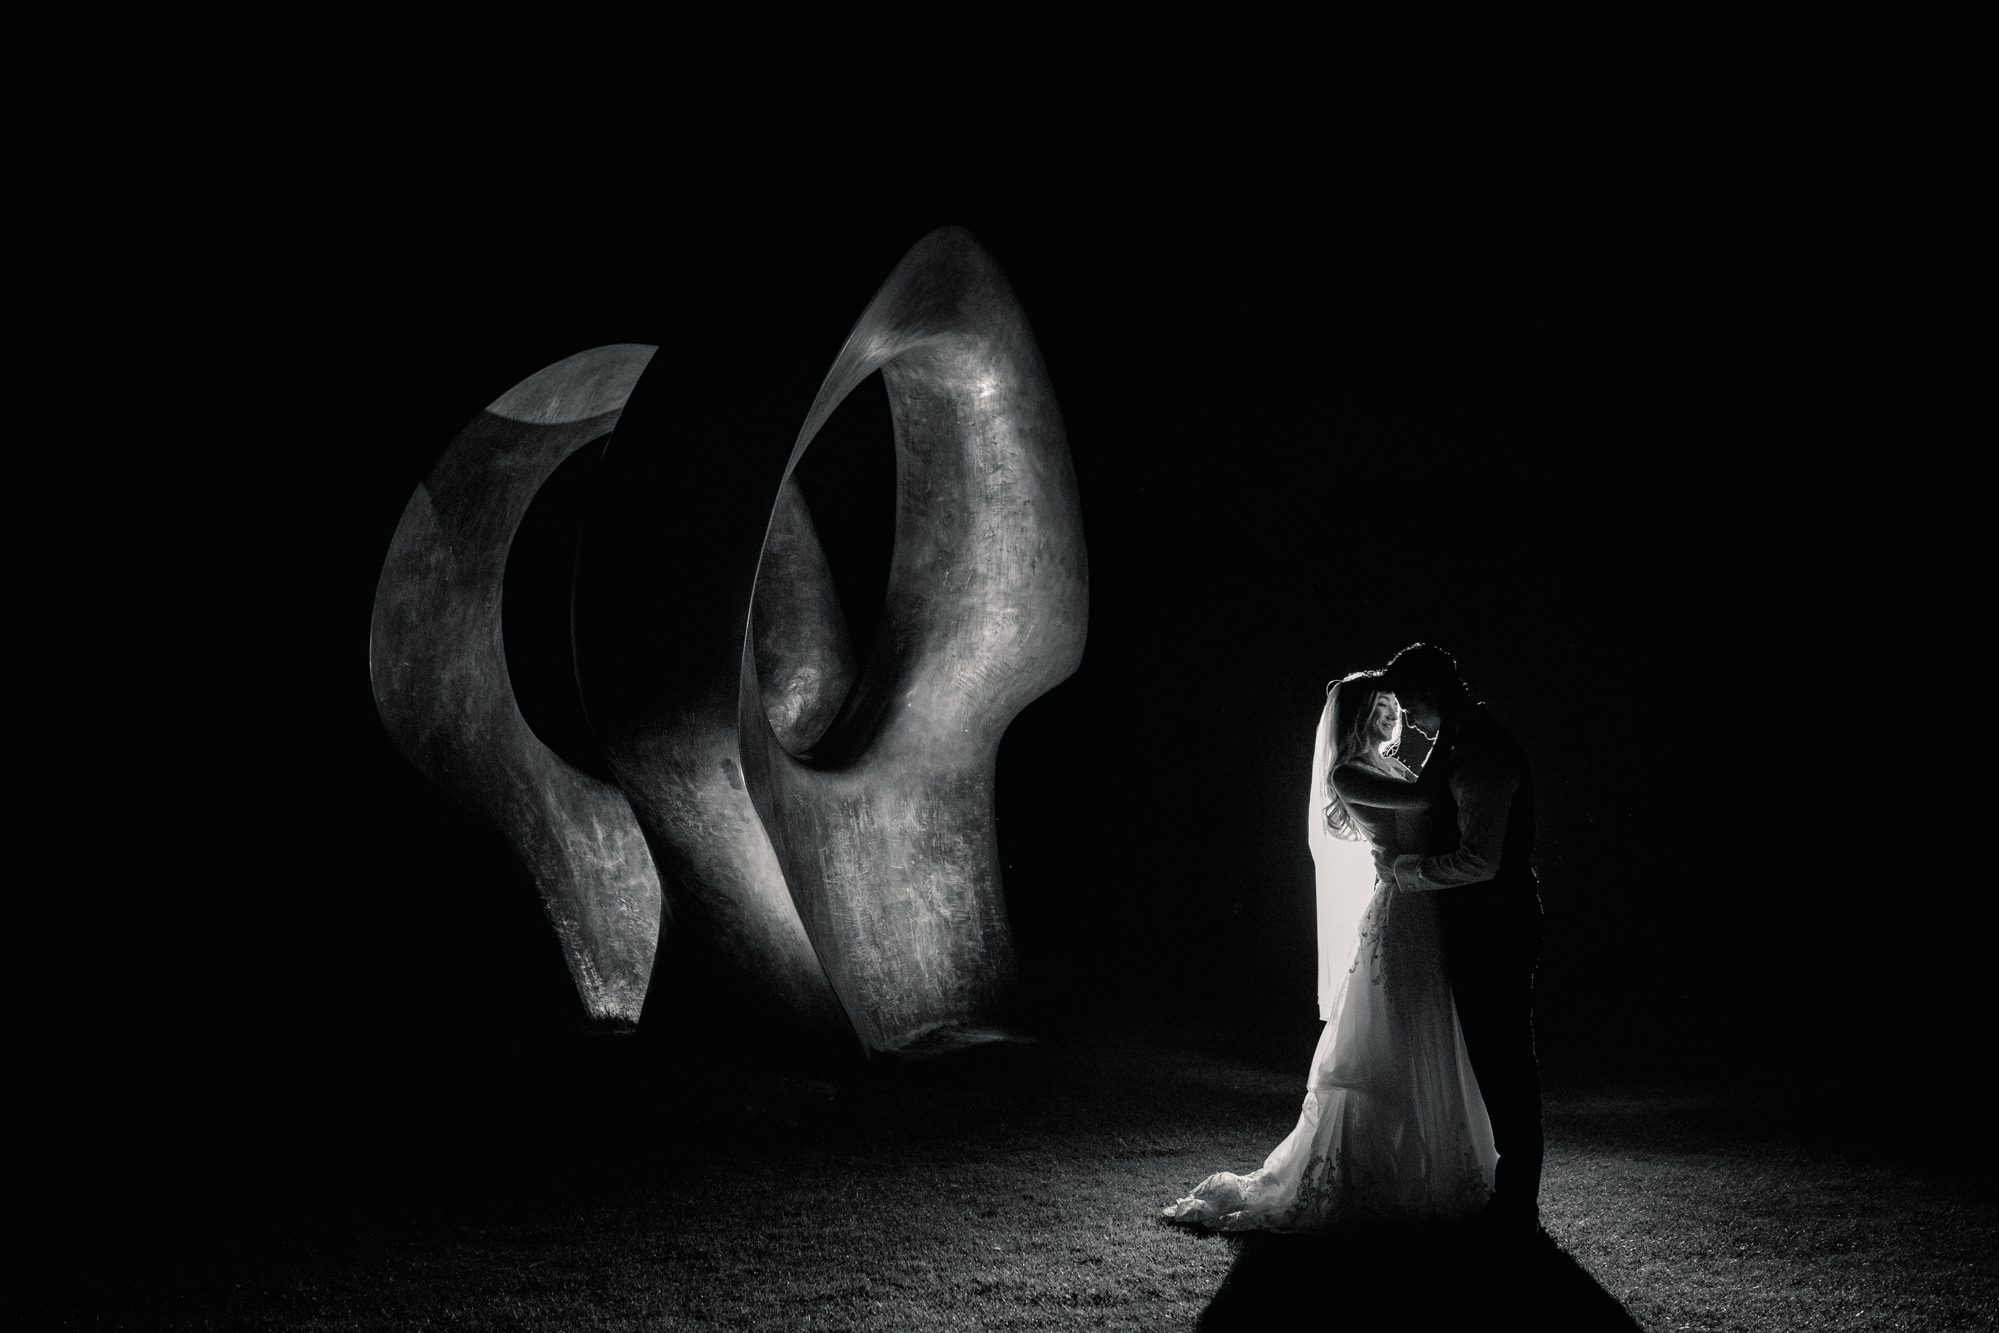 Silhouette of bride and groom with Henry Moore statue in black and white